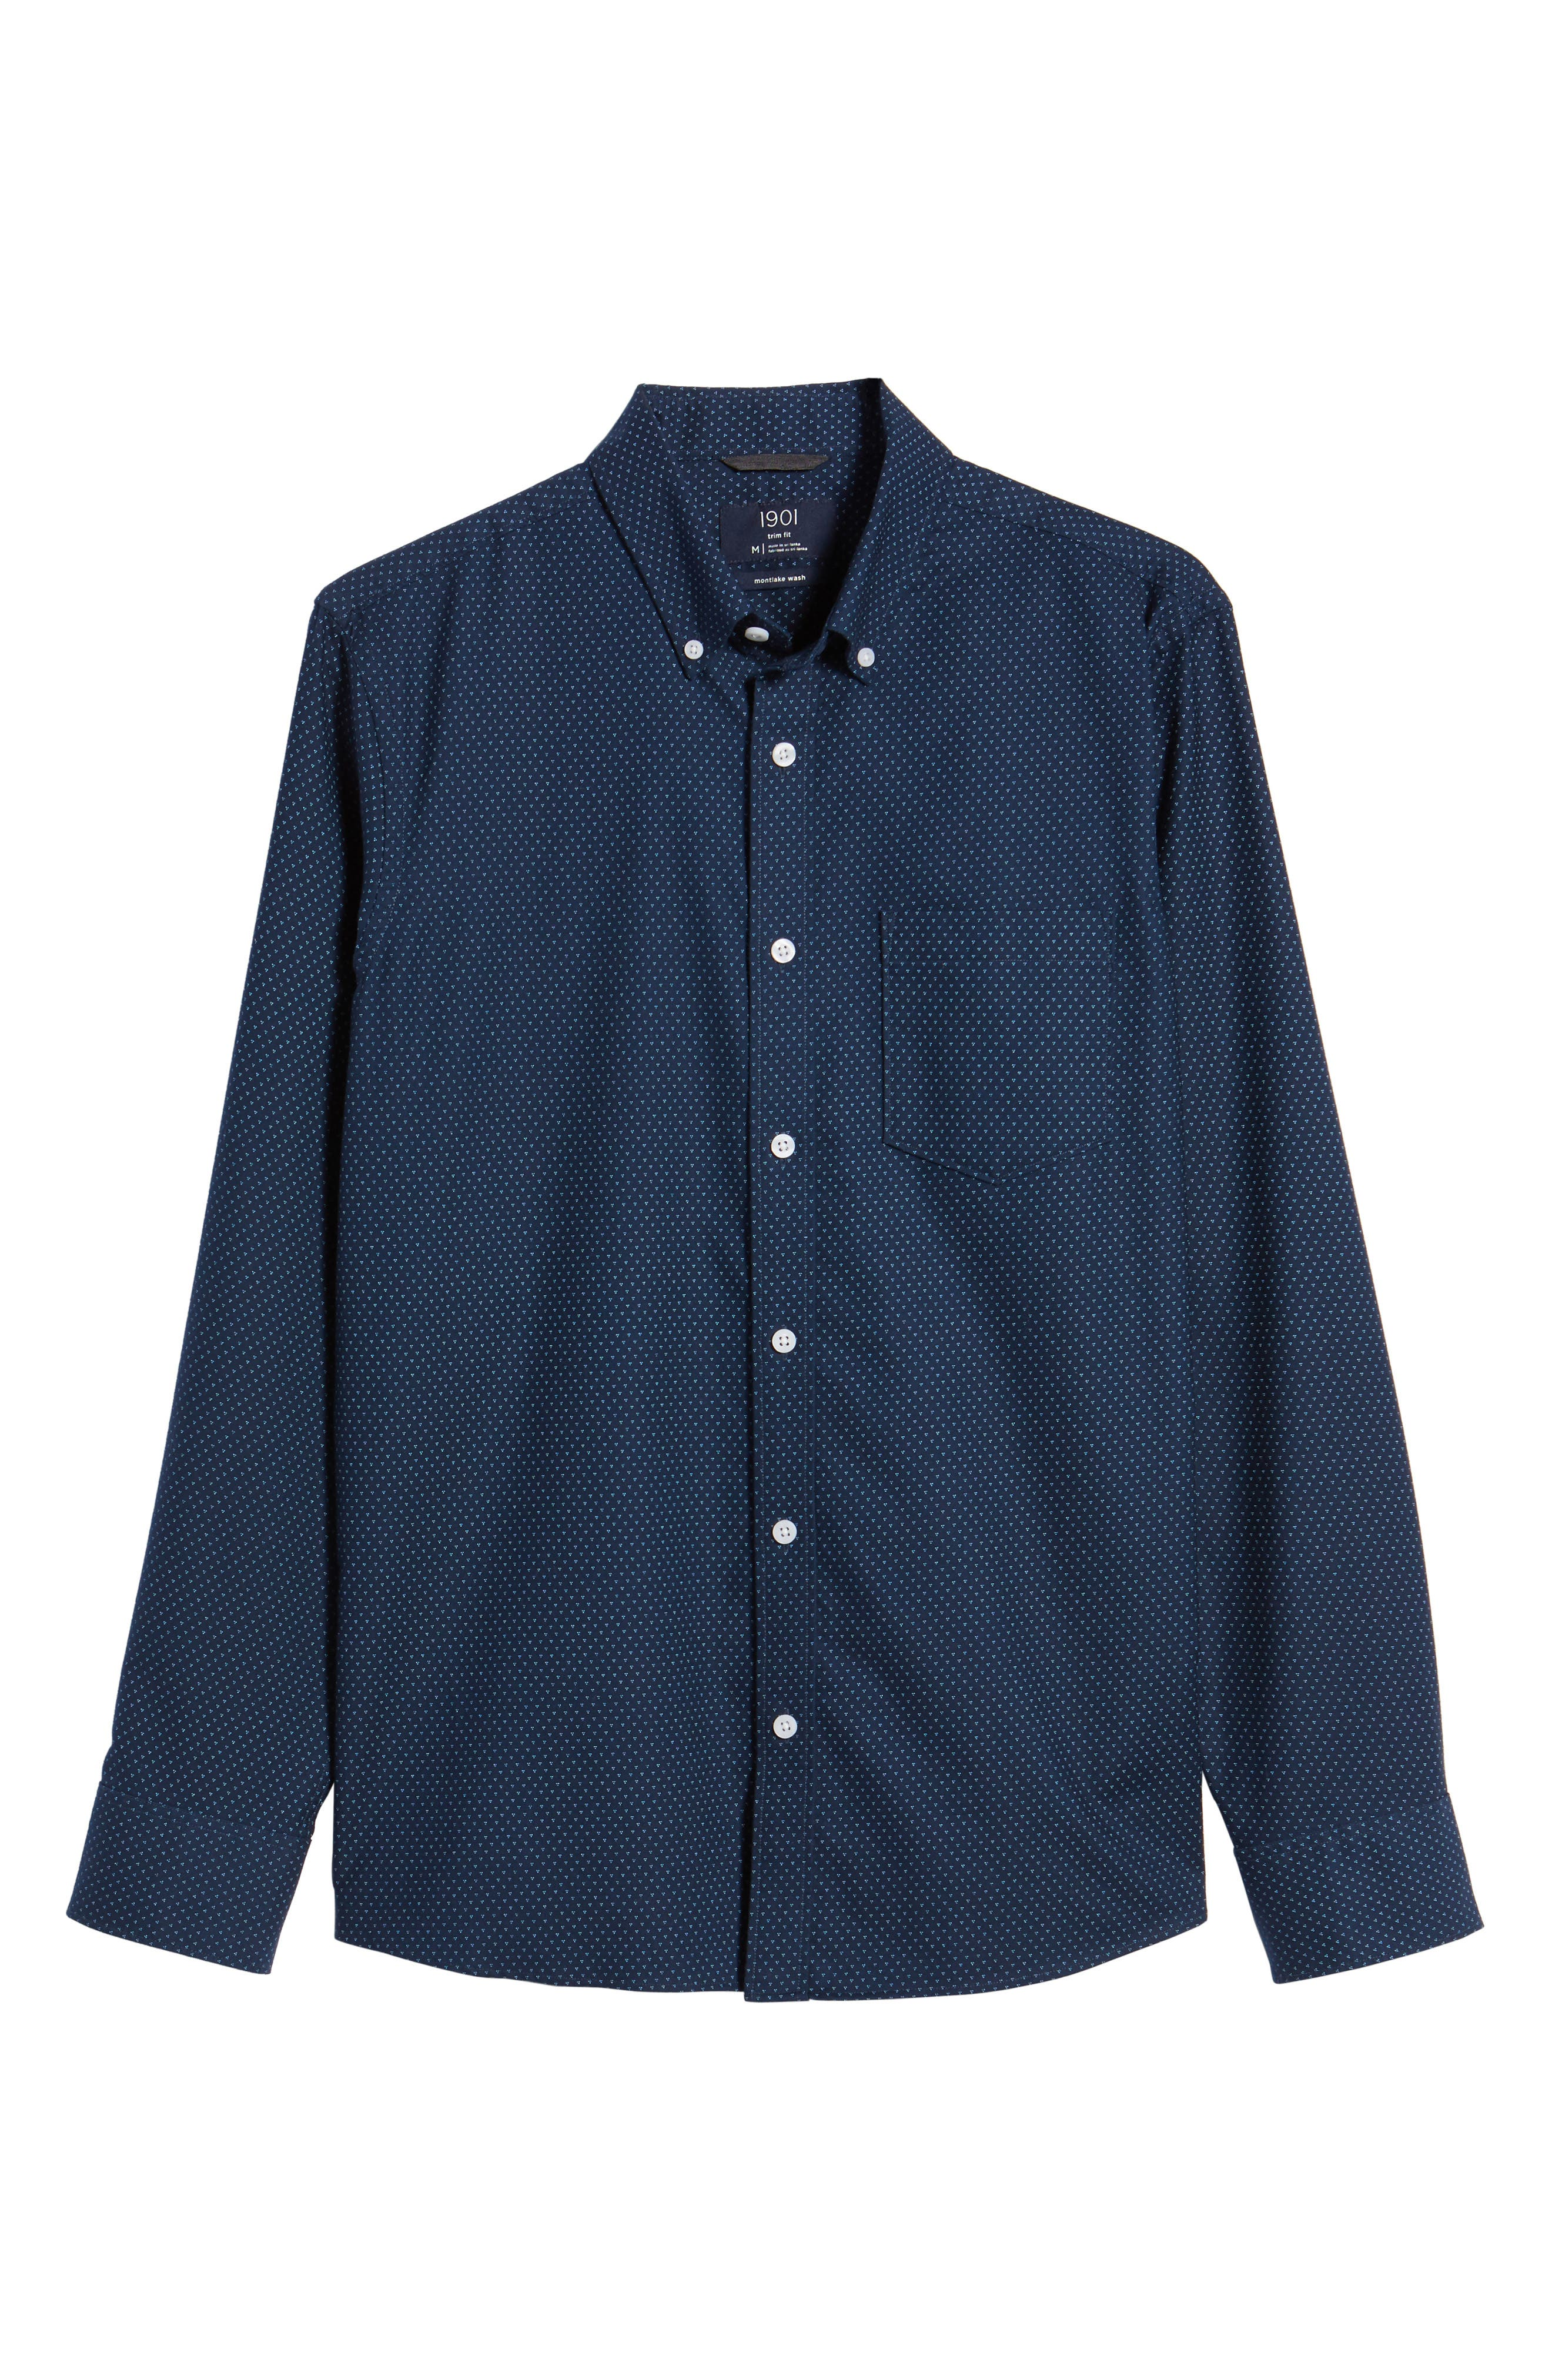 Trim Fit Print Washed Oxford Sport Shirt,                             Alternate thumbnail 6, color,                             Navy Night Triple Dot